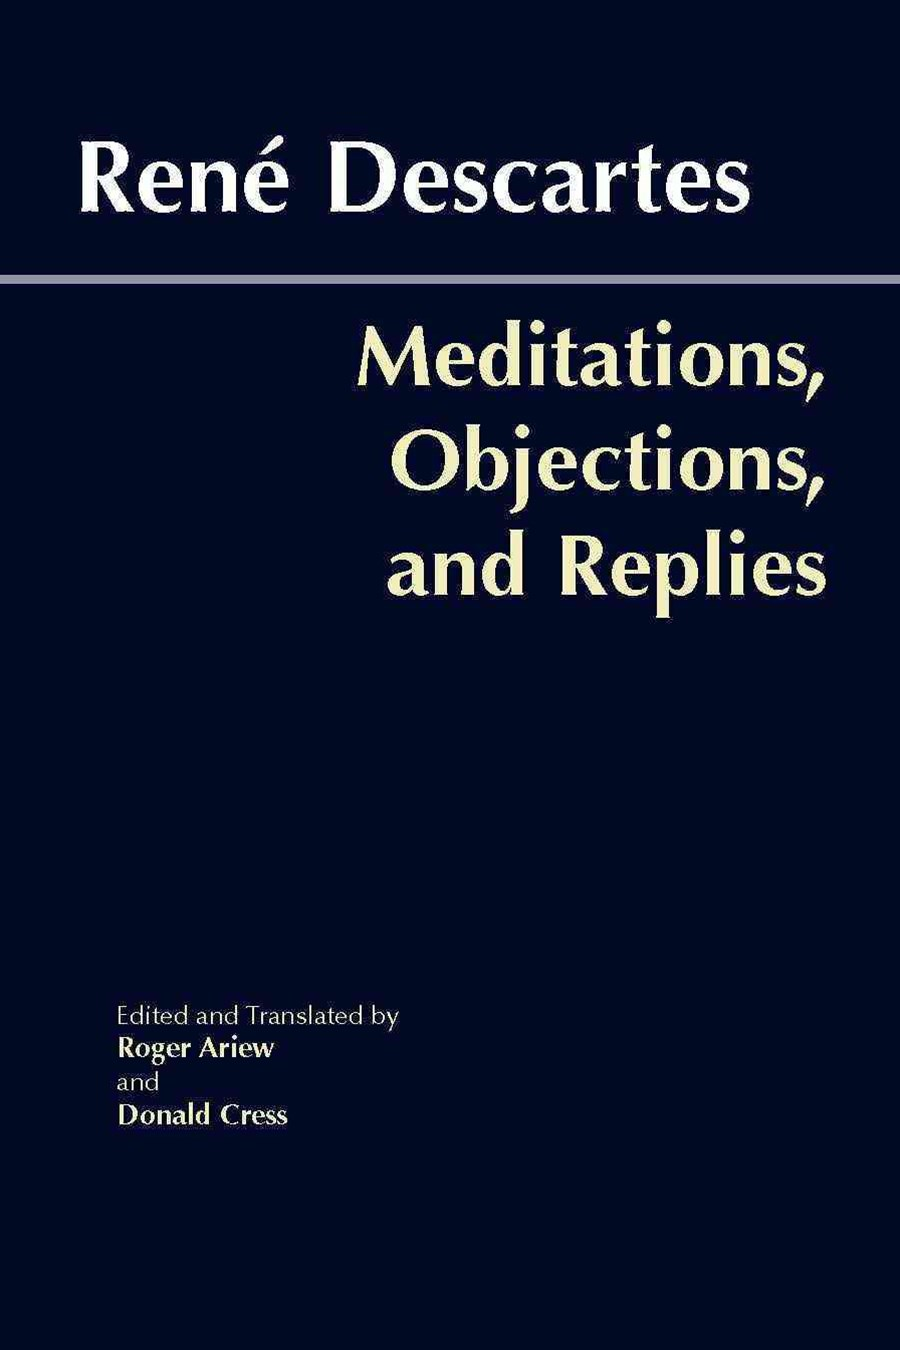 Meditations, Objections, and Replies